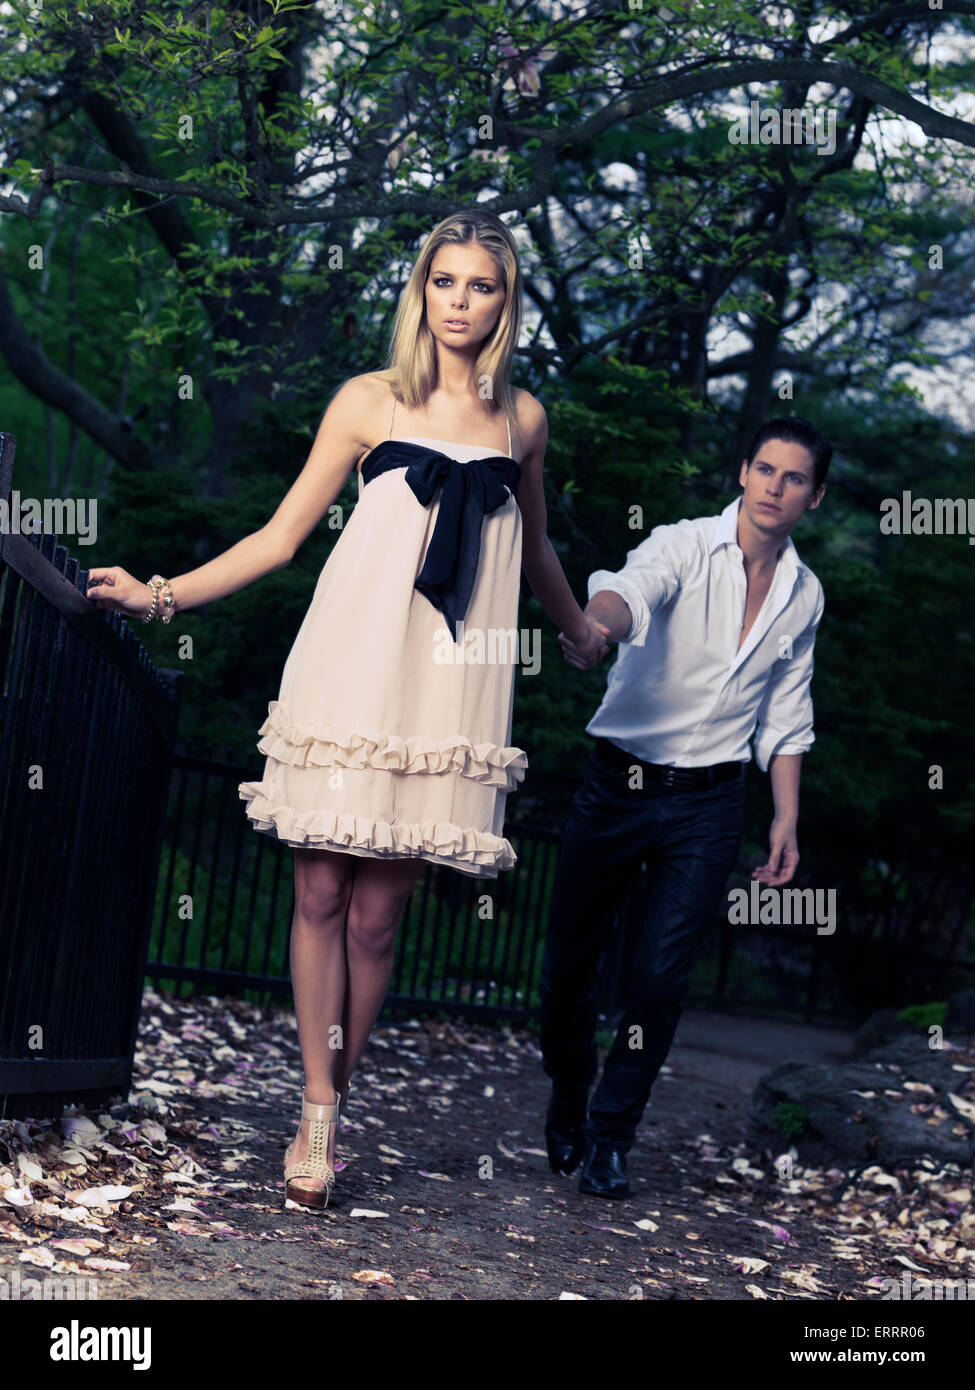 Artistic photo of a young woman leading a man behind holding his hand Stock Photo